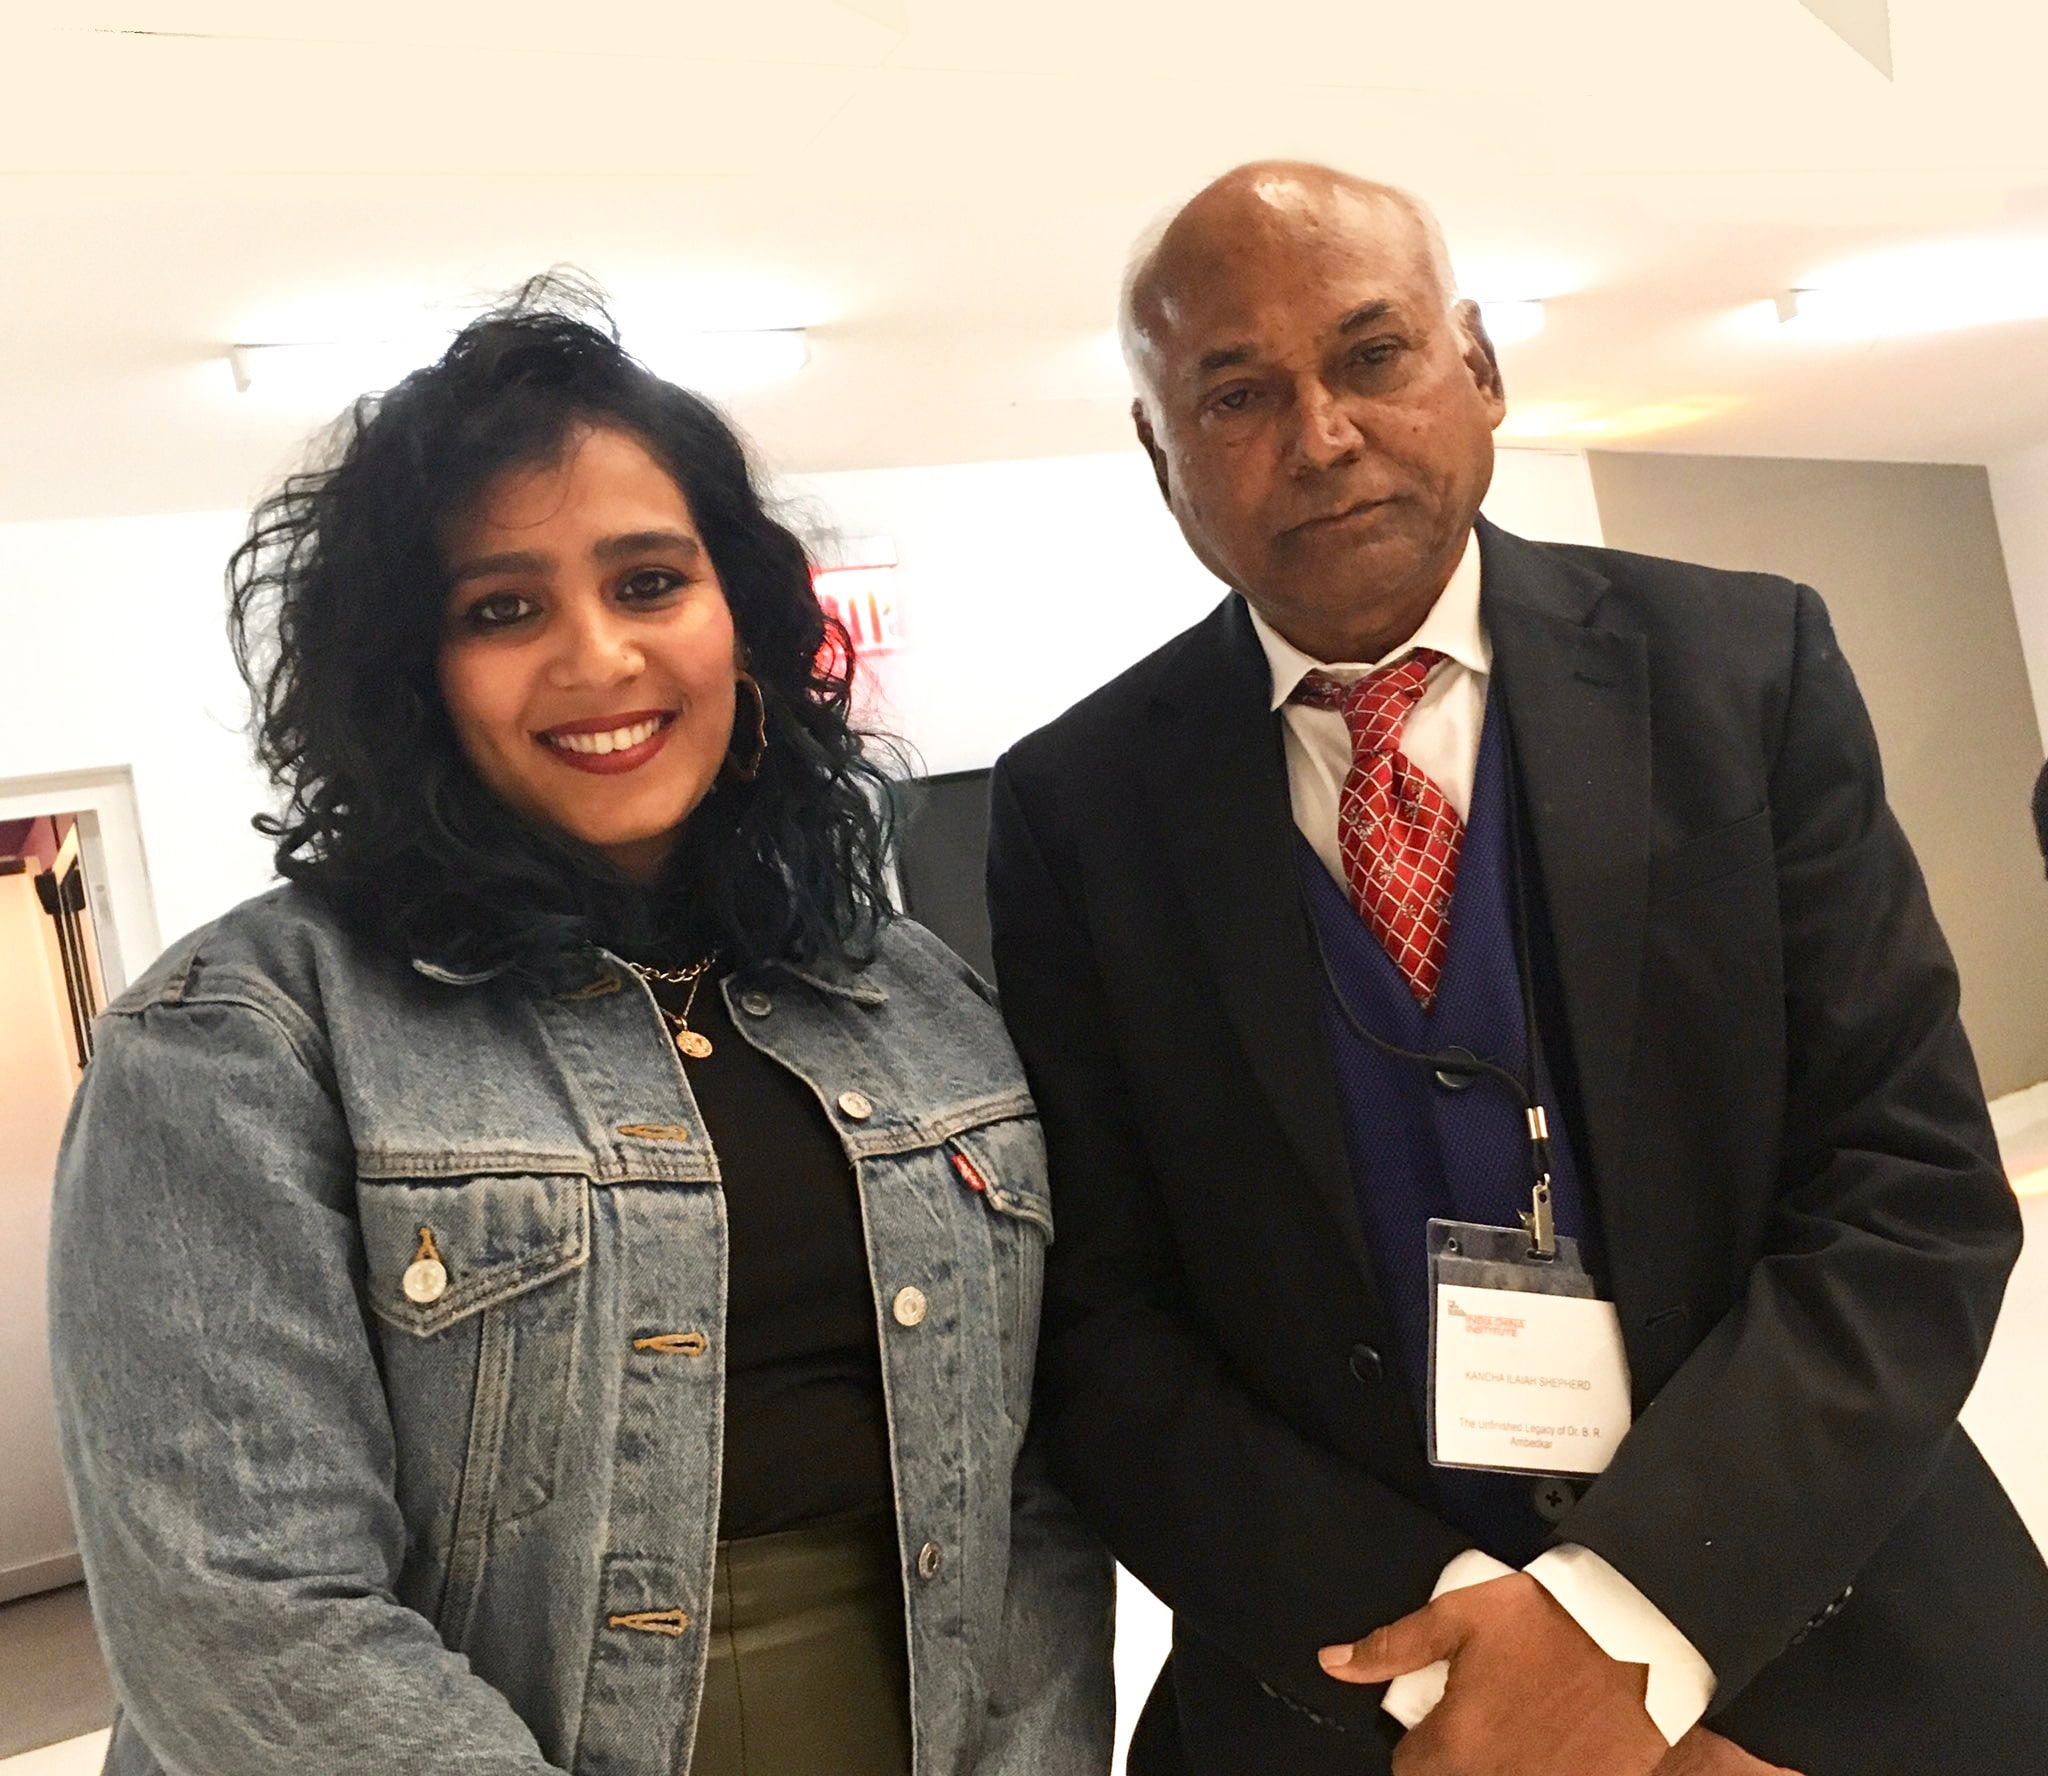 Yashica Dutt with academician and social scientist Kancha Ilaiah.